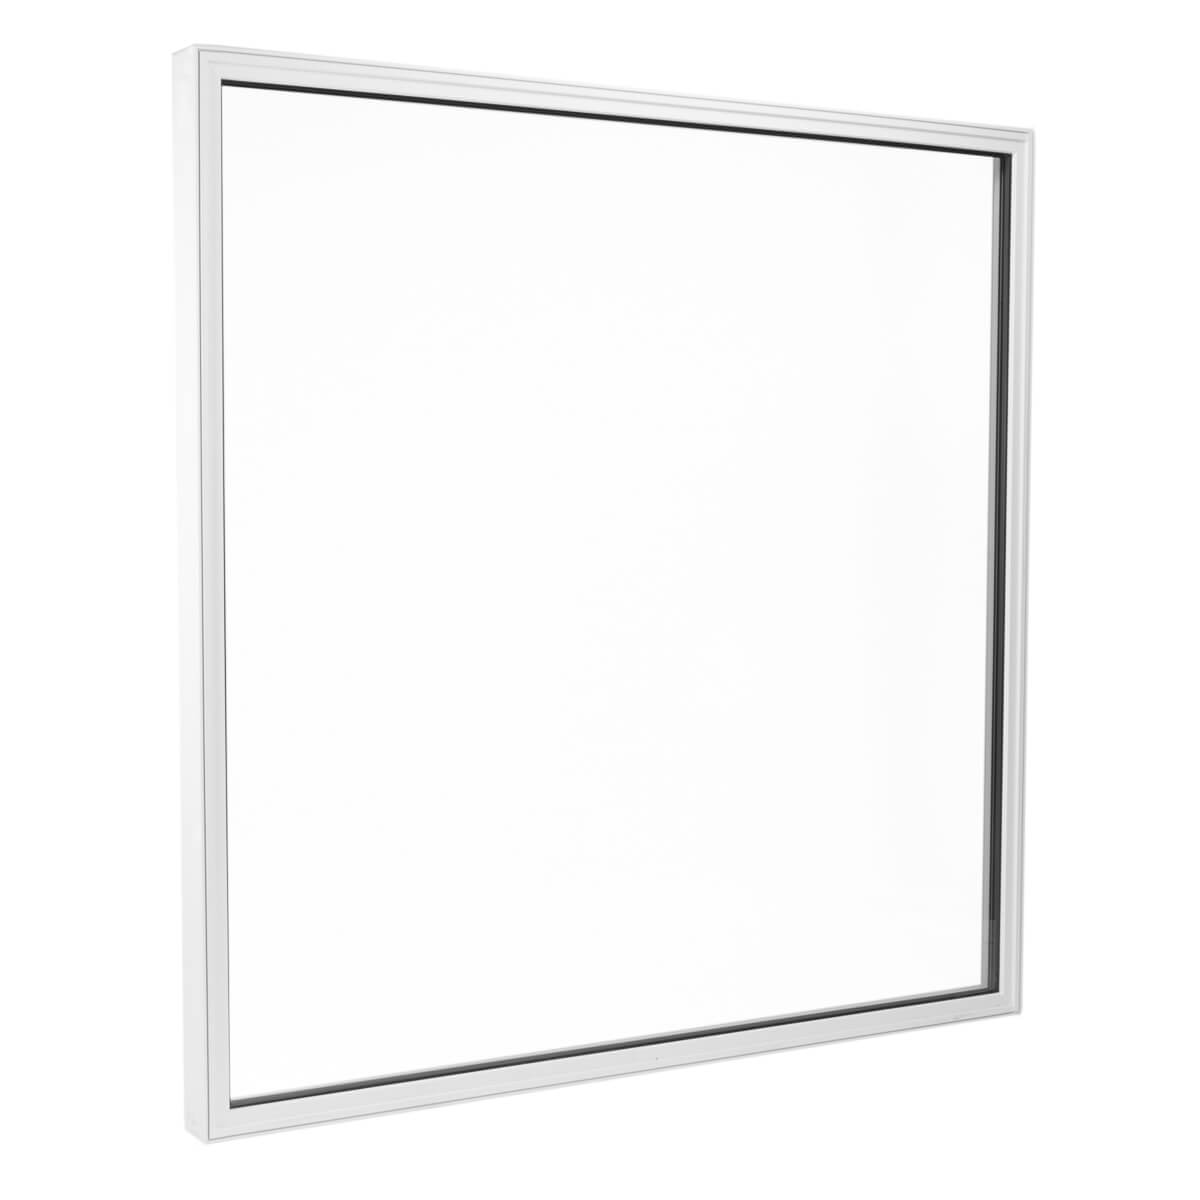 Custom Made Fixed Picture Window on a White Background